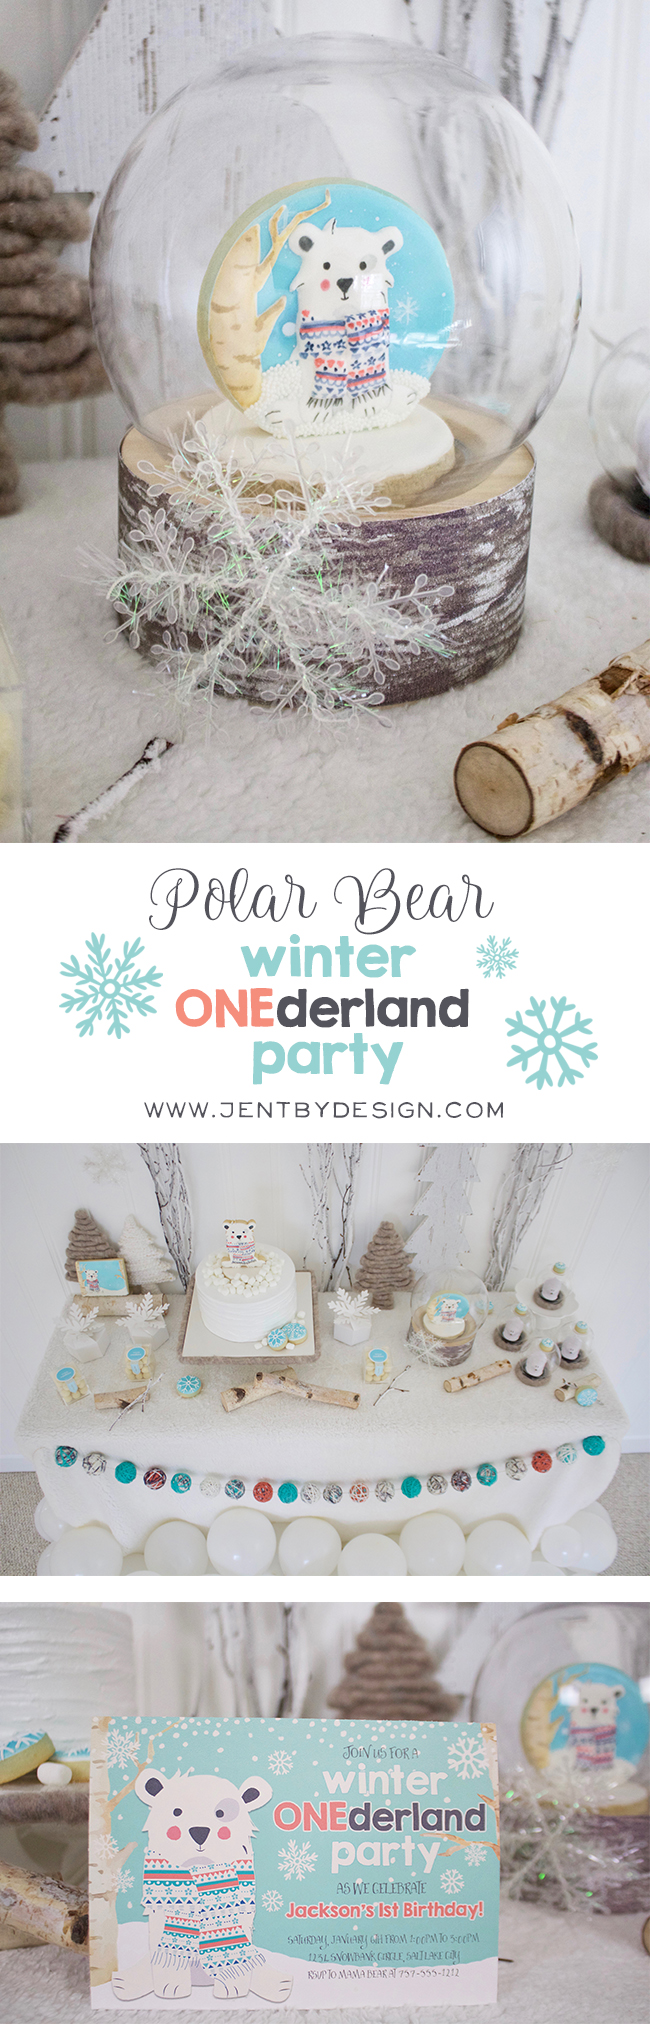 Polar Bear Winter ONEderland Party.jpg